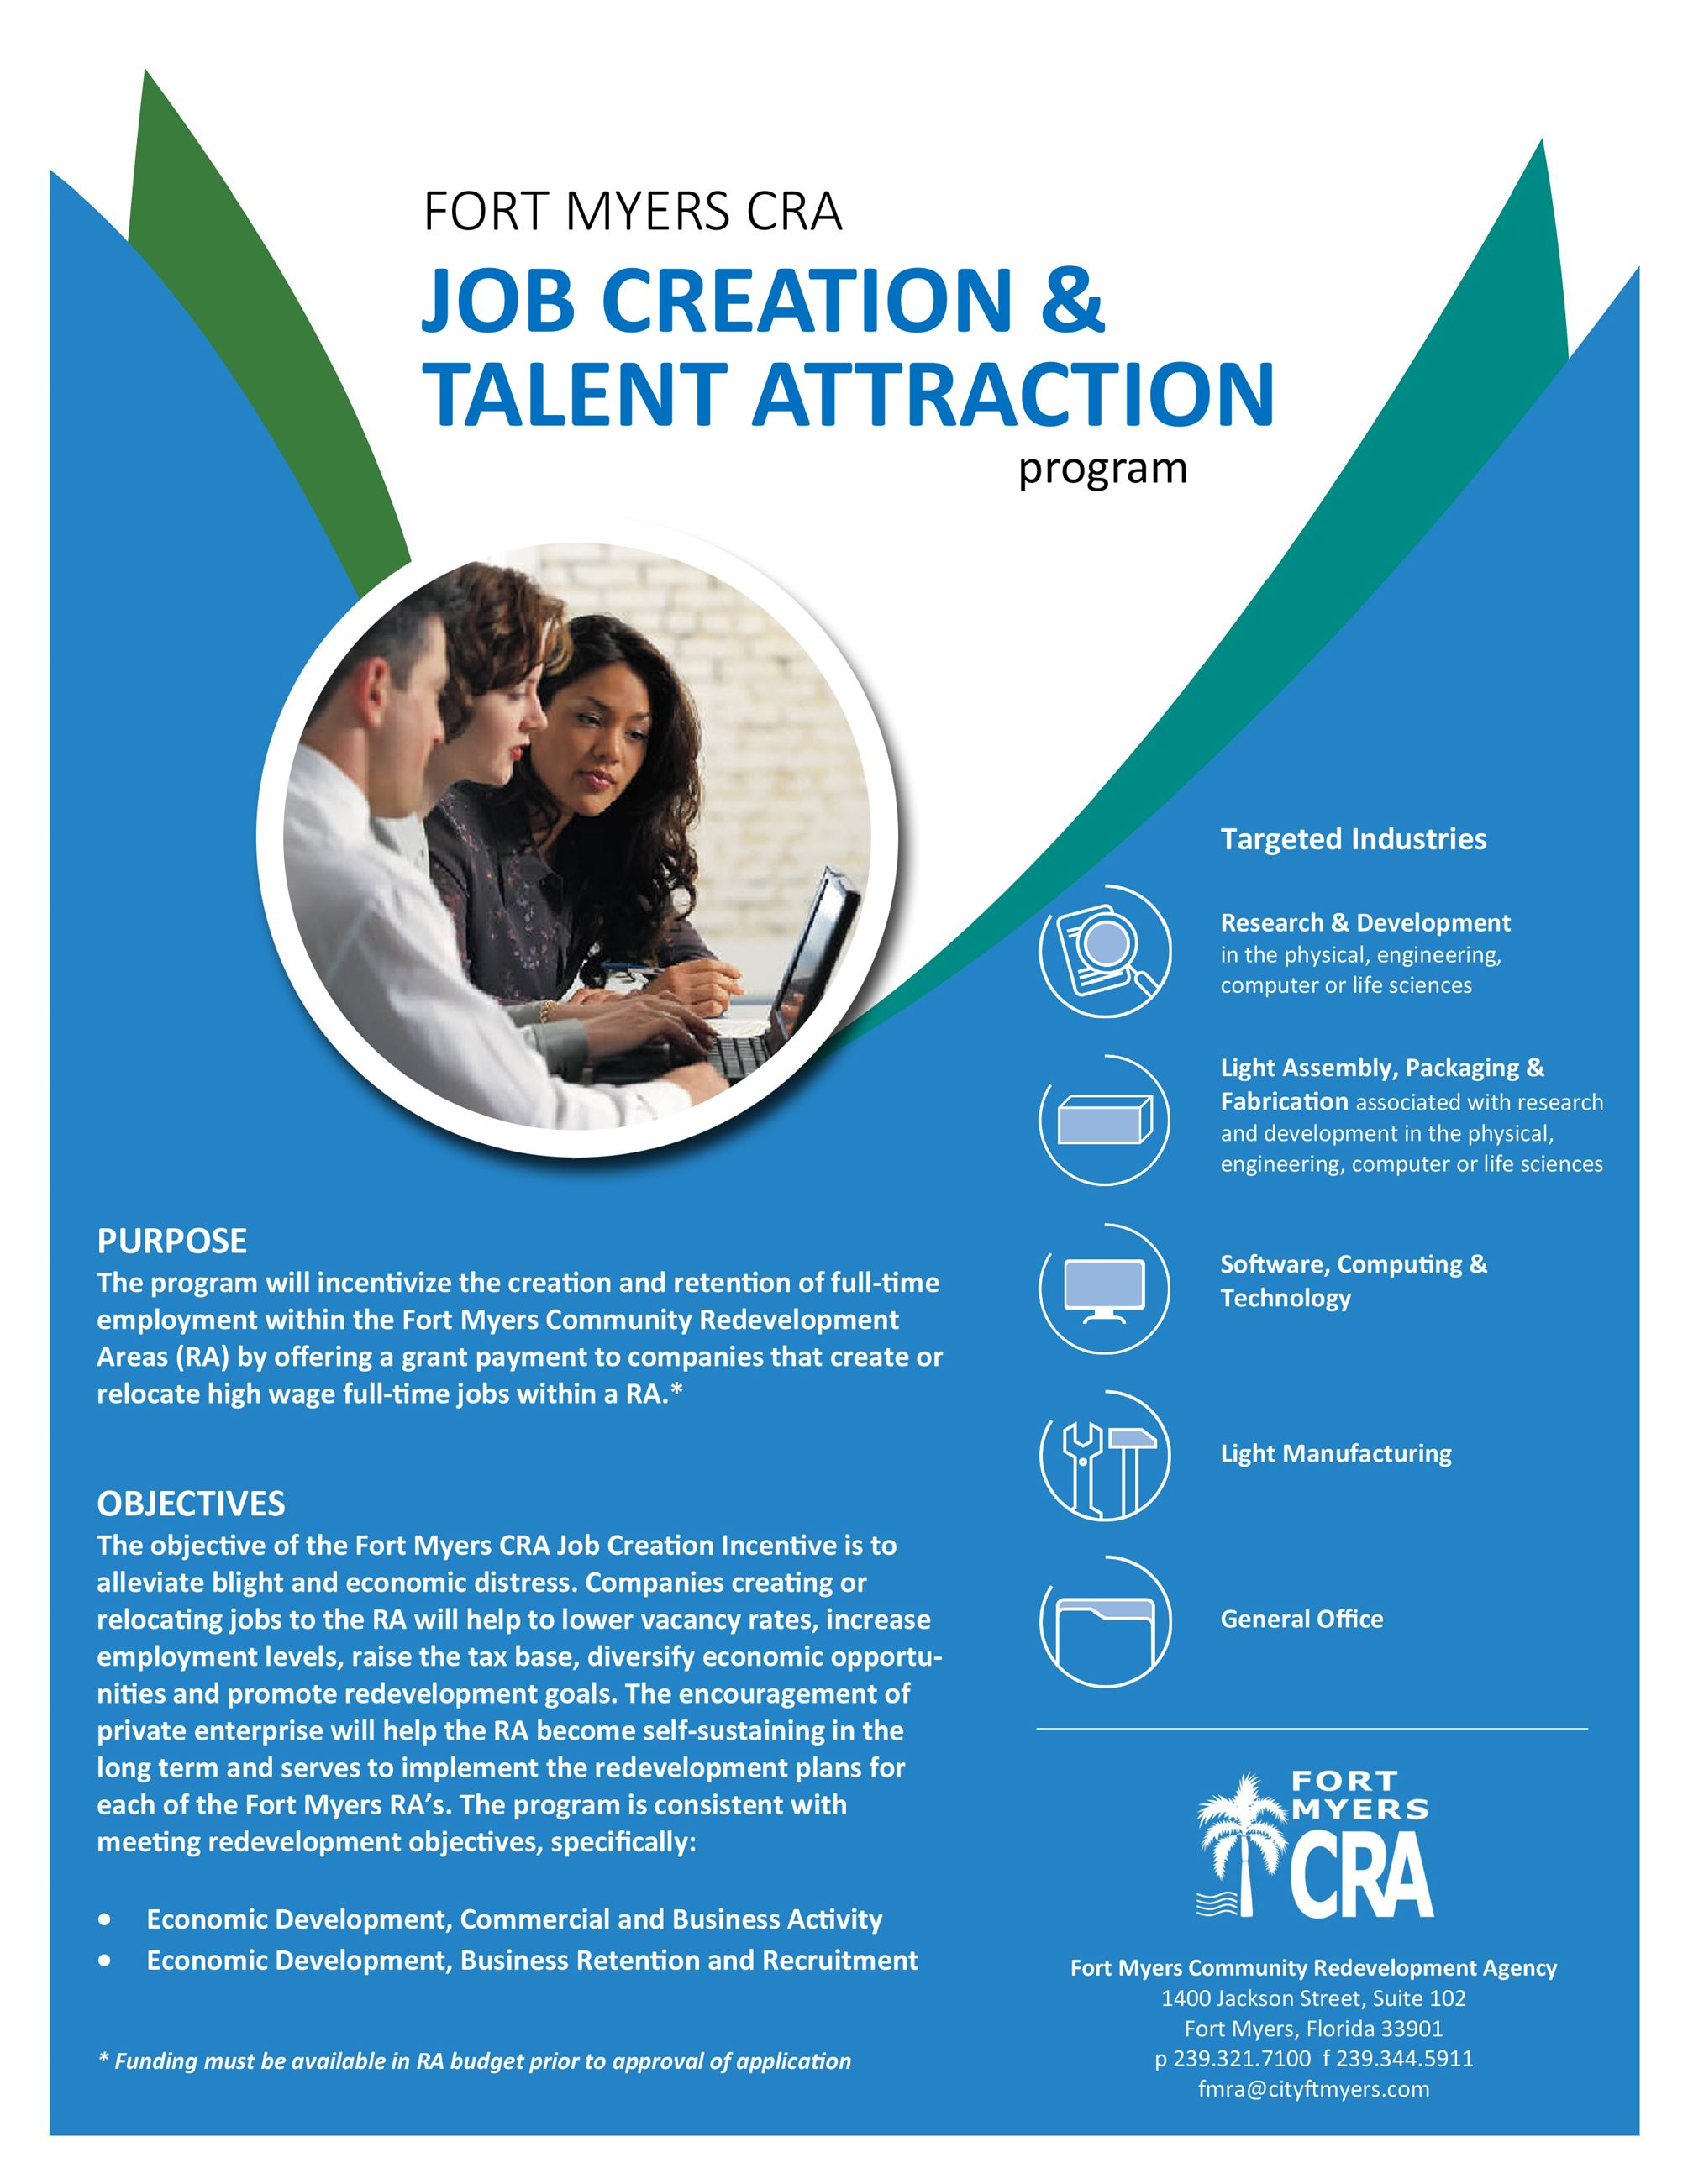 CRA Job Creation and Talent Attraction Program Guide Opens in new window